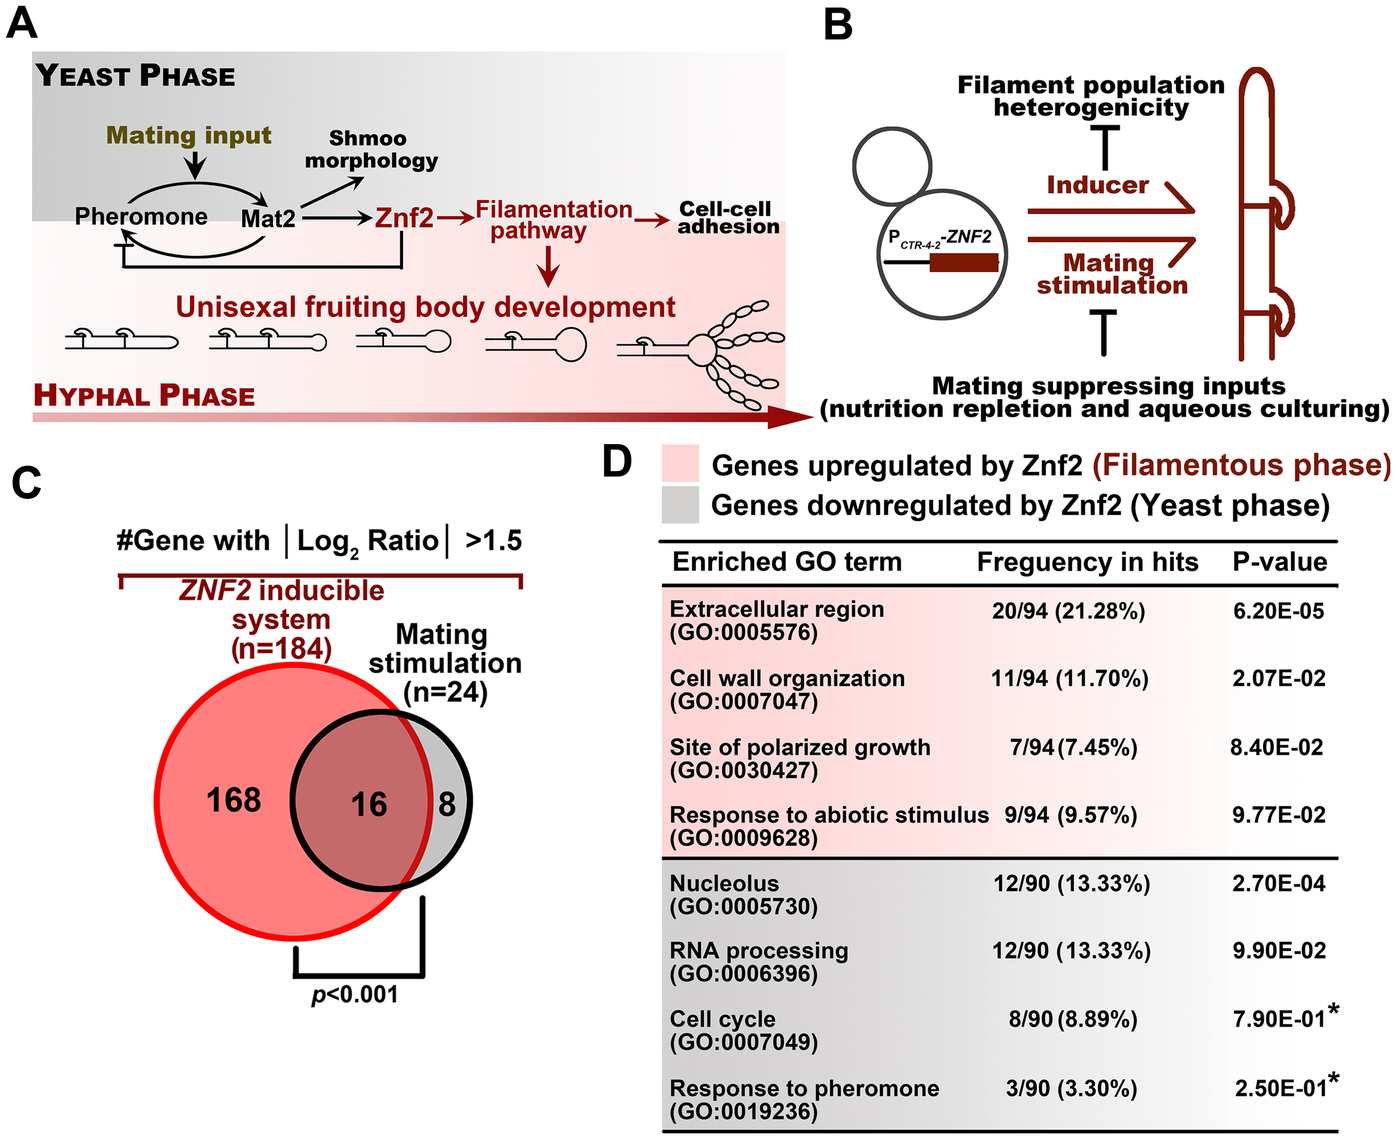 Identification of the genetic network in hyphal and yeast populations.